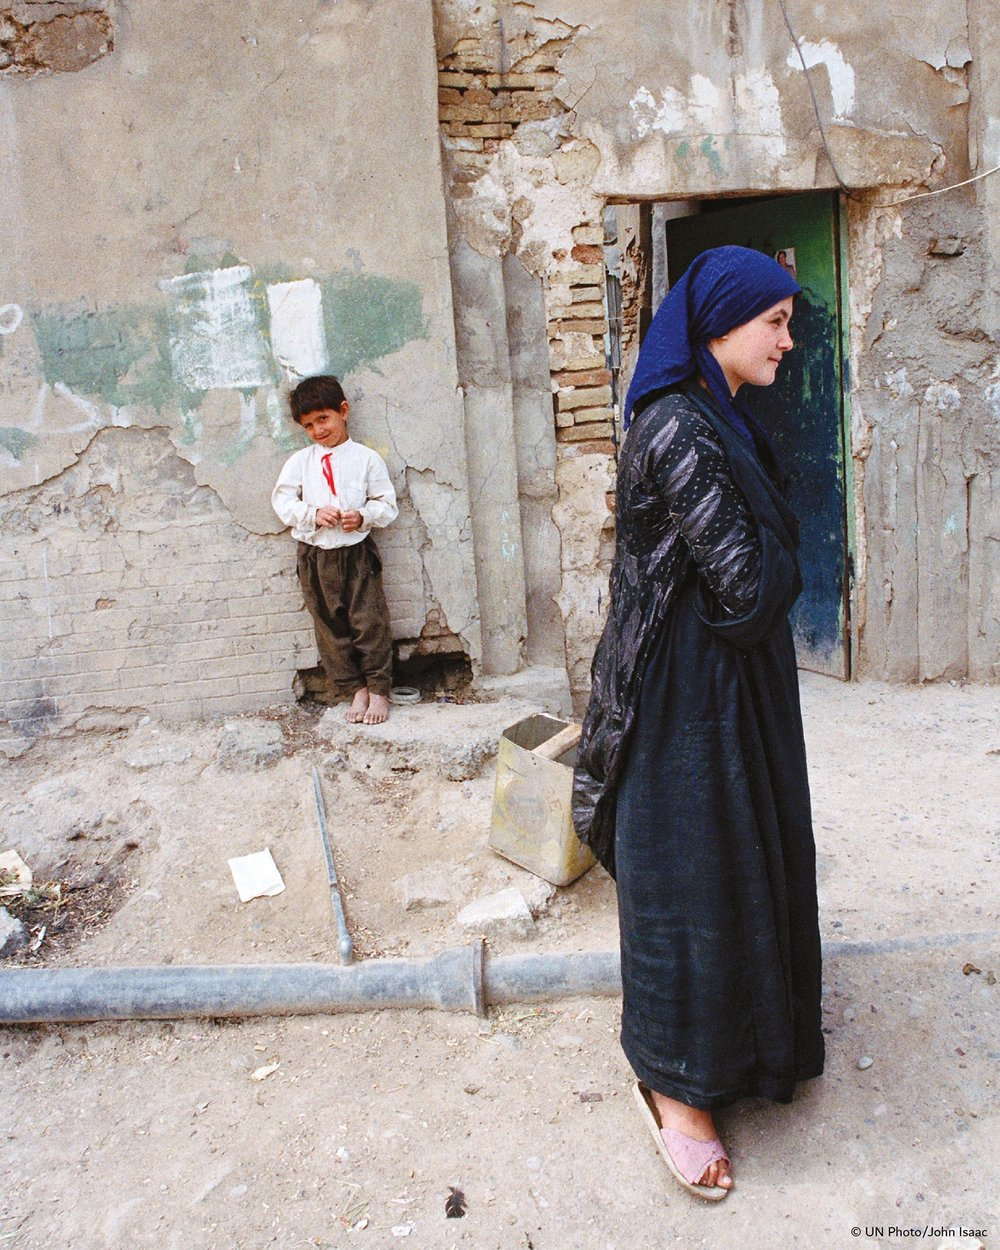 A Kurdish family stand outside a damaged home in Erbil, northern Iraq in 1991. Courtesy UN Photo/John Isaac.